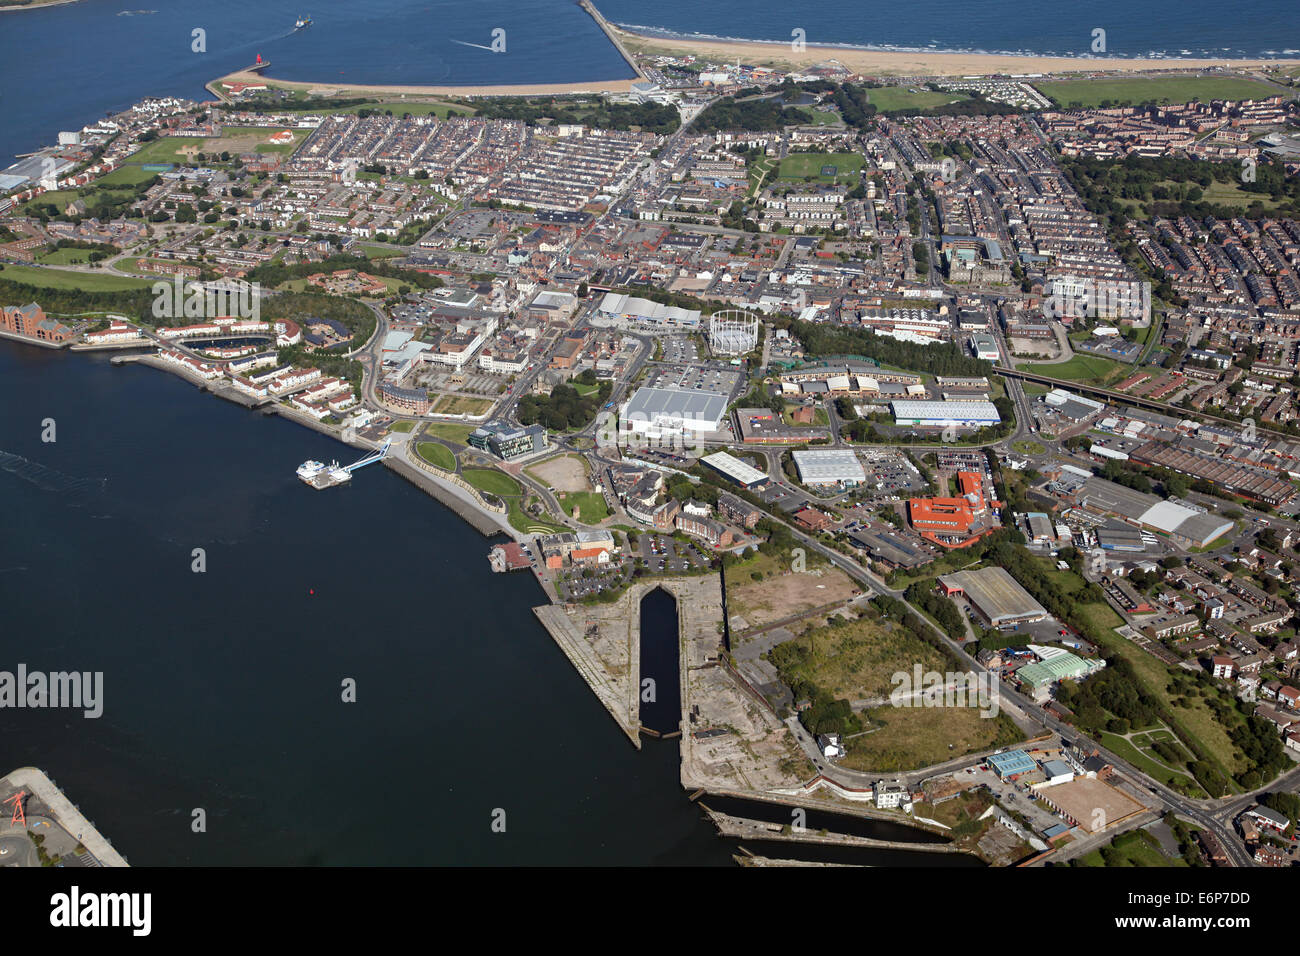 aerial view of South Shields, Tyne & Wear, UK - Stock Image